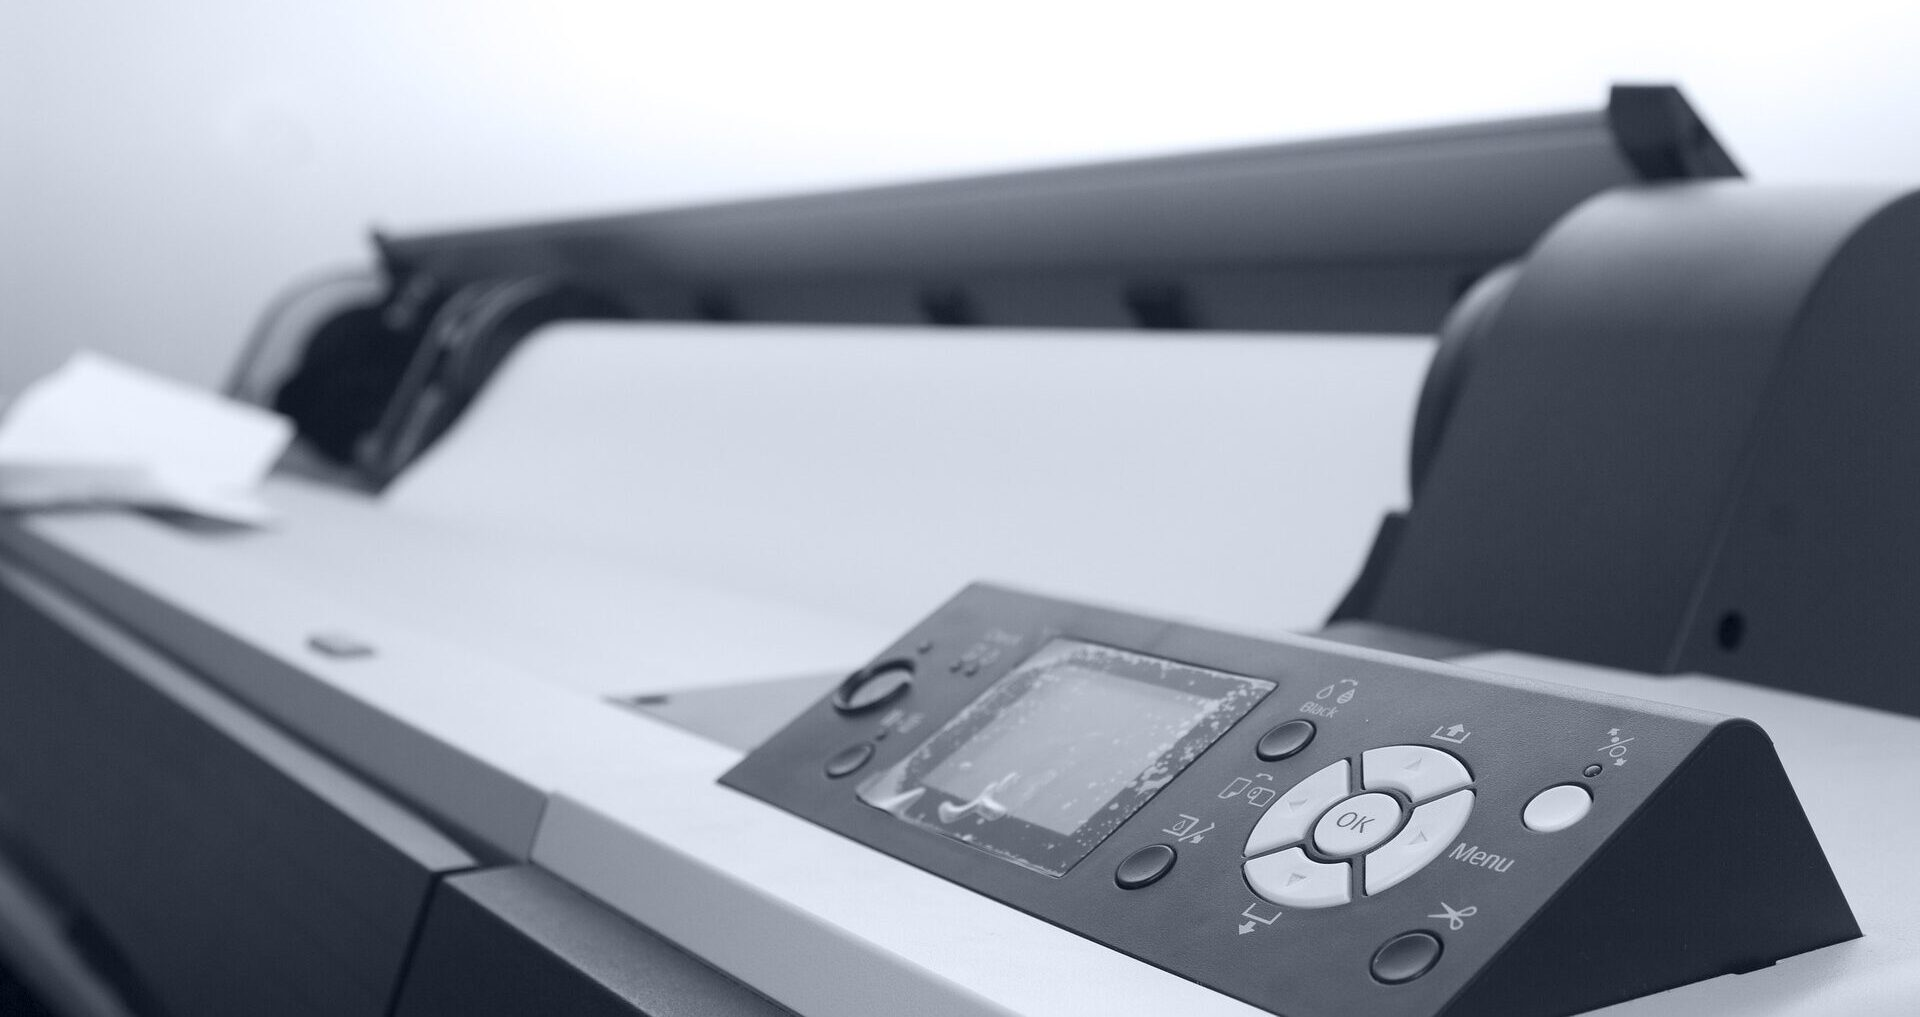 How to connect your wireless printer